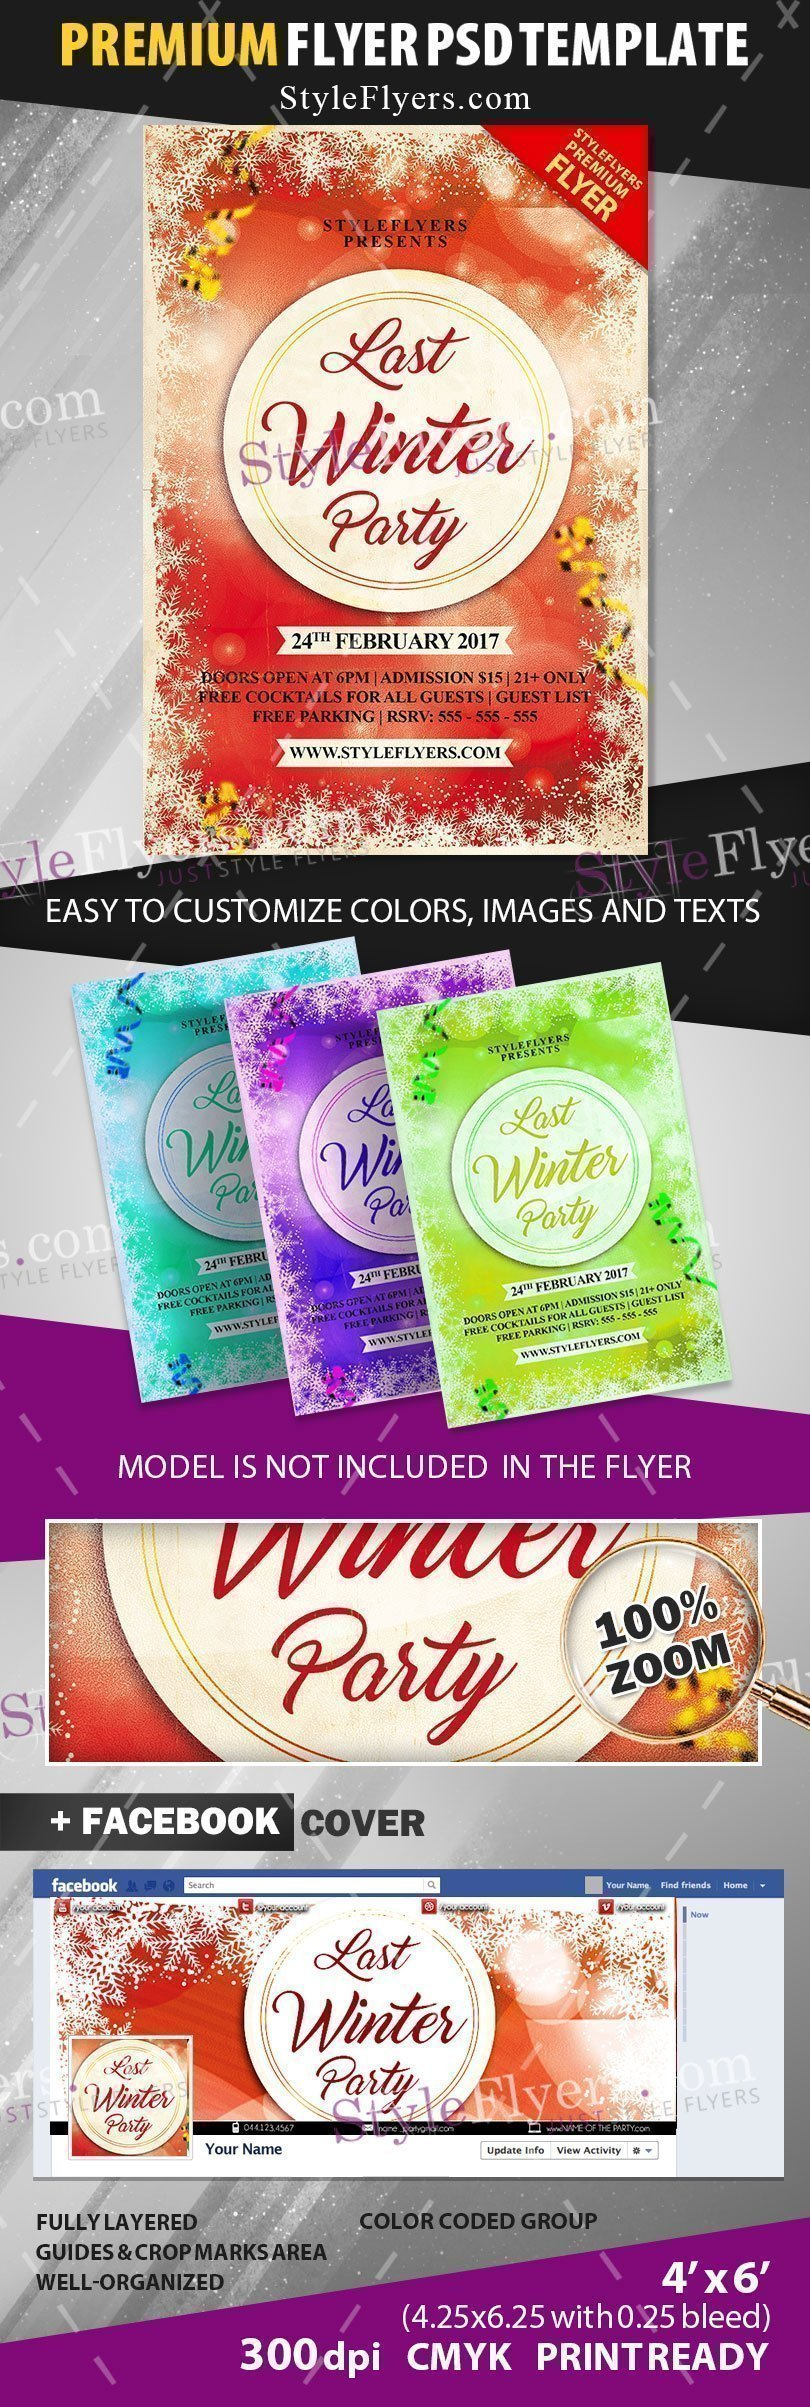 preview_Last_winter_party_premium_template